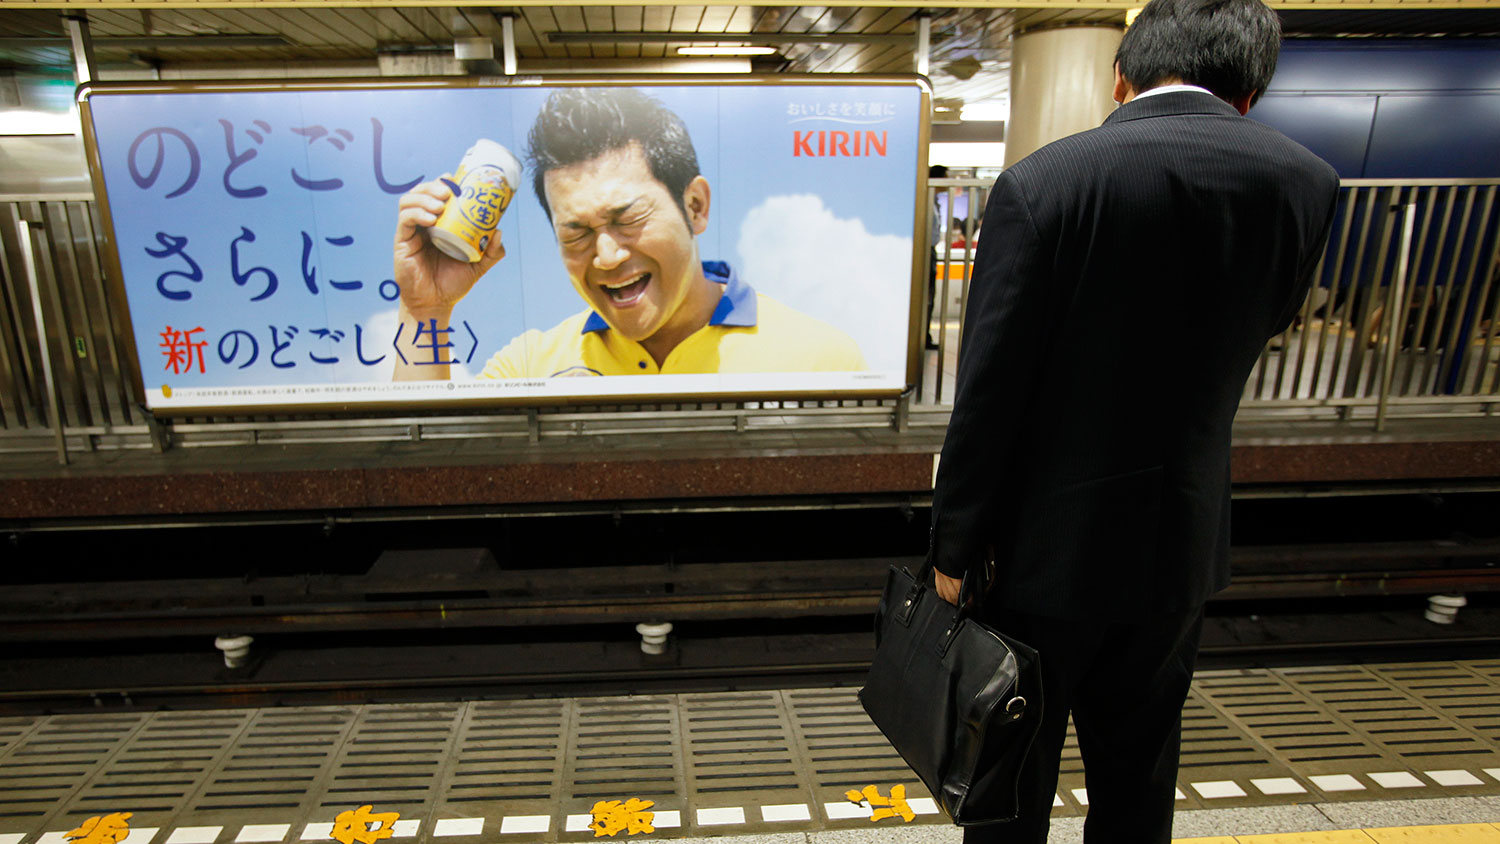 Japan's New Rules for Beer Commercials Could Hurt Celebrity Endorsements